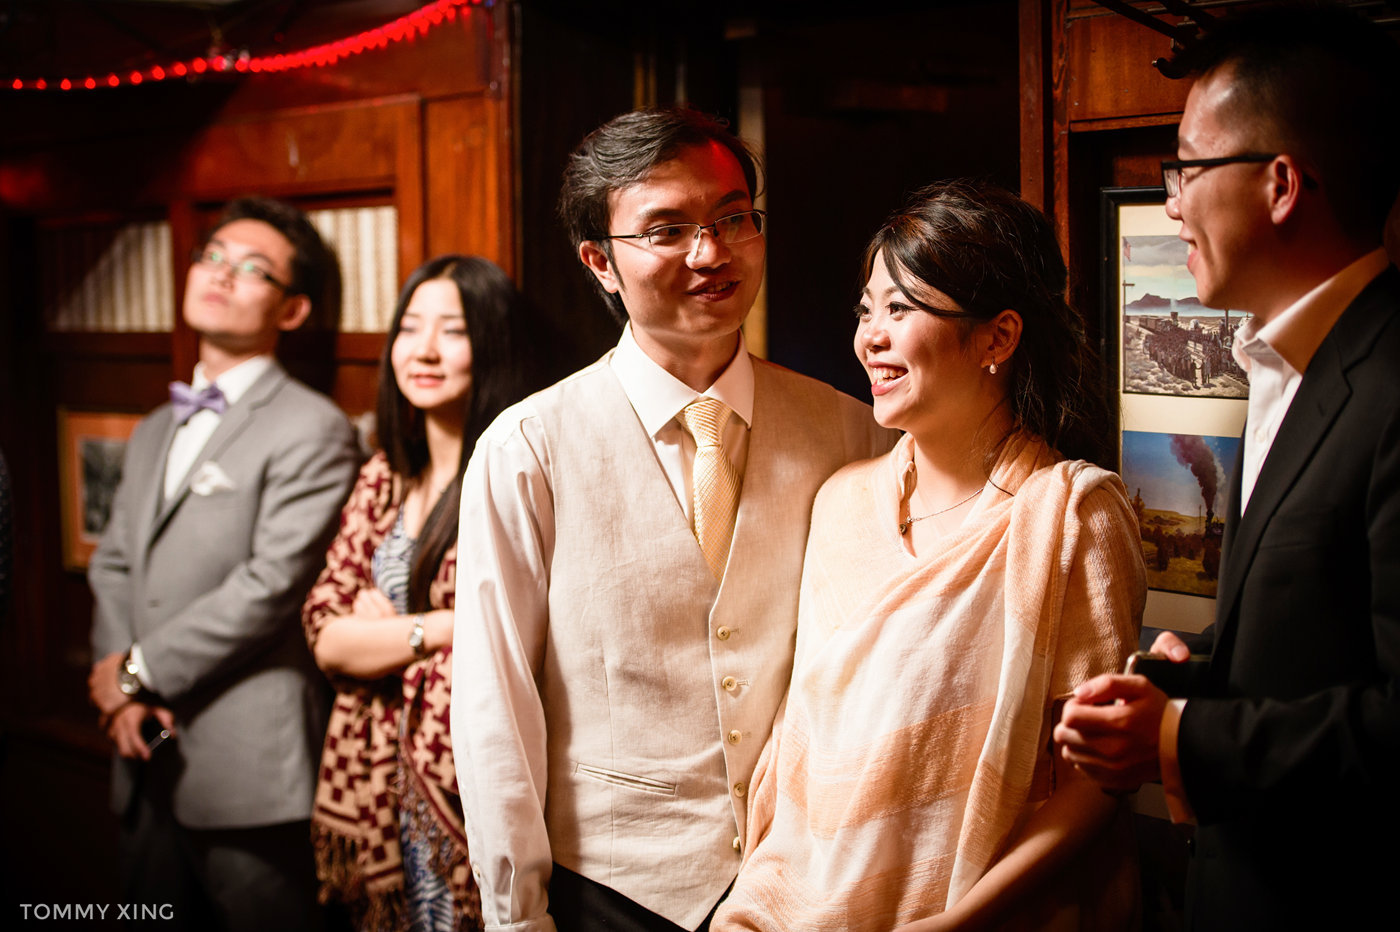 Seattle Wedding and pre wedding Los Angeles Tommy Xing Photography 西雅图洛杉矶旧金山婚礼婚纱照摄影师 195.jpg